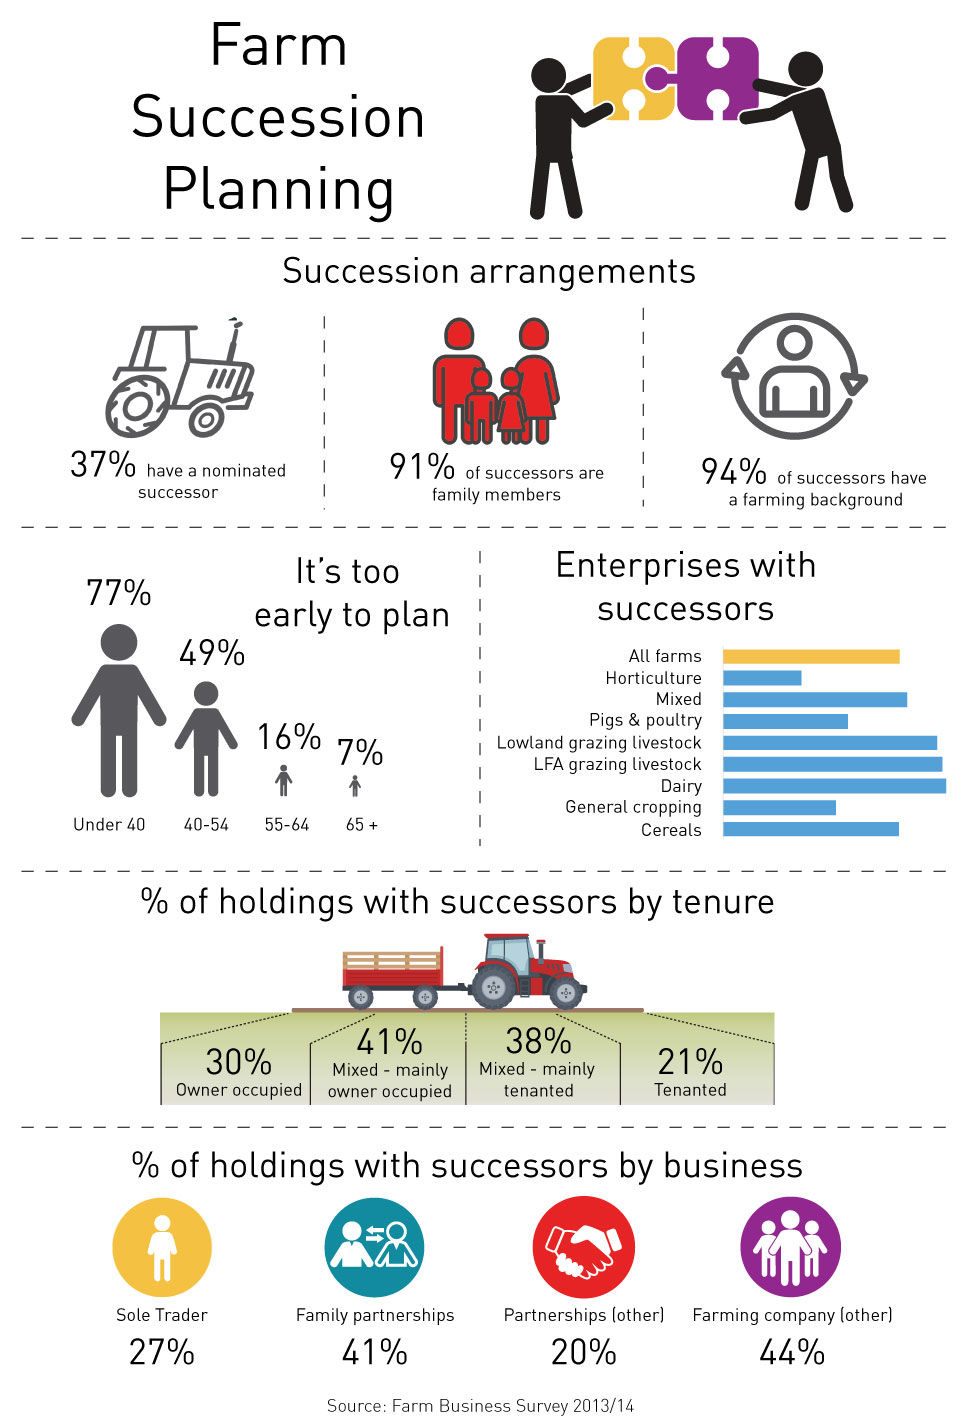 Farm Succession Infographic. 37% have a nominated successor. 91% of farm successors are family members of which 94% have a farming background. However, 77% of those under 40 believe it is too early to plan.